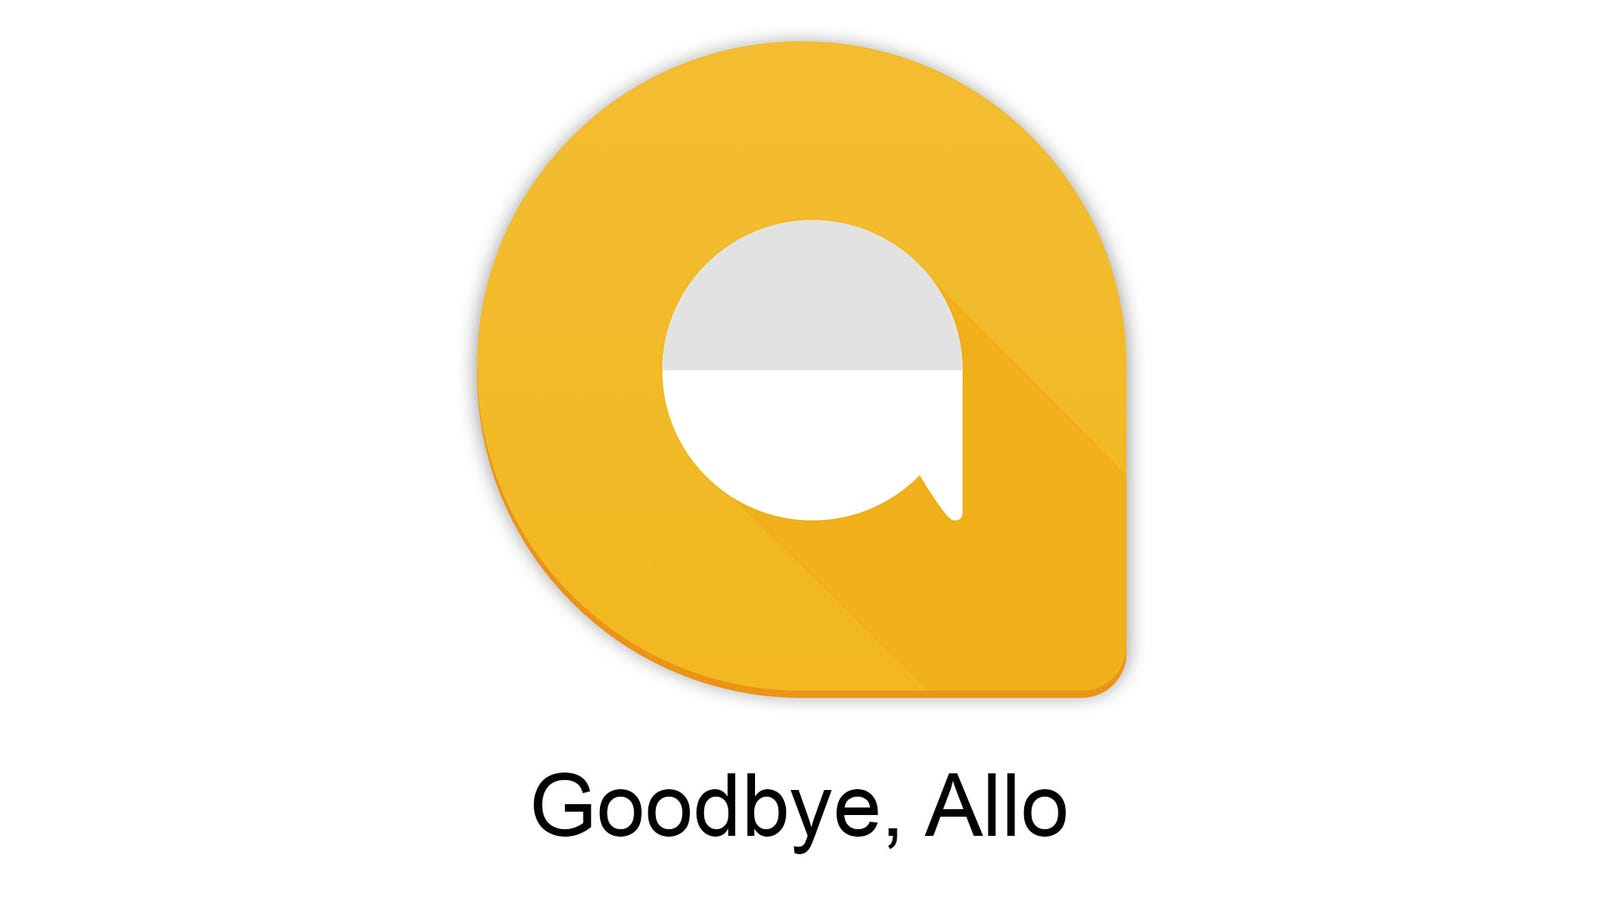 QnA VBage Allo Could Have Been Great. Google Blew It.